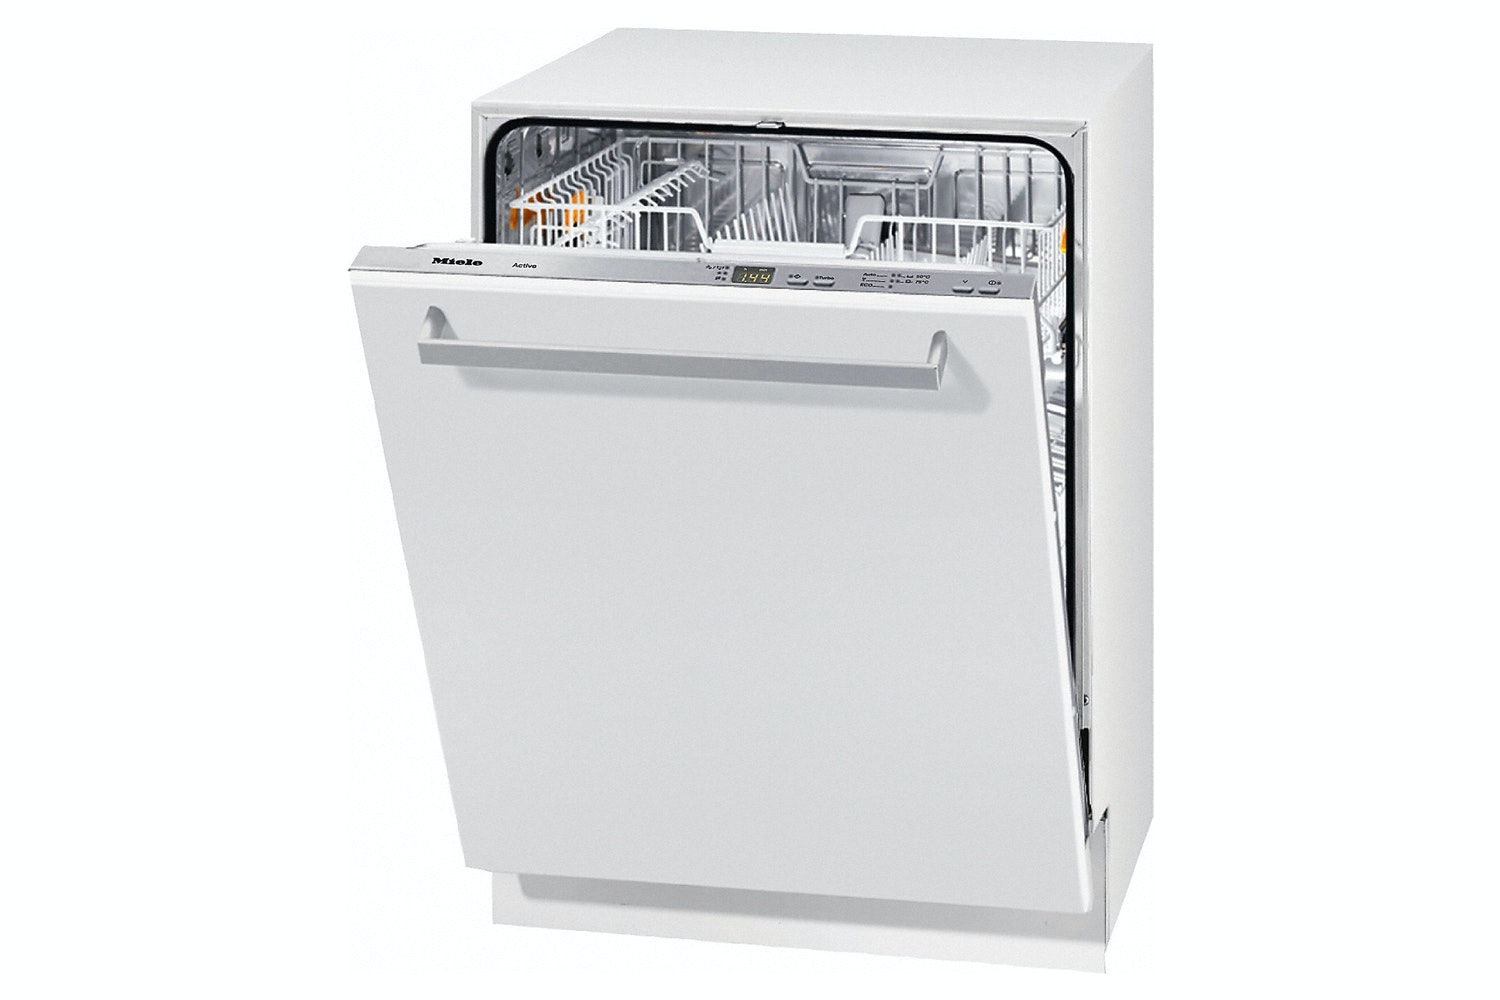 Miele G 4263 Vi Active  Fully integrated dishwashers   with delay start for maximum convenience at an attractive entry-level price